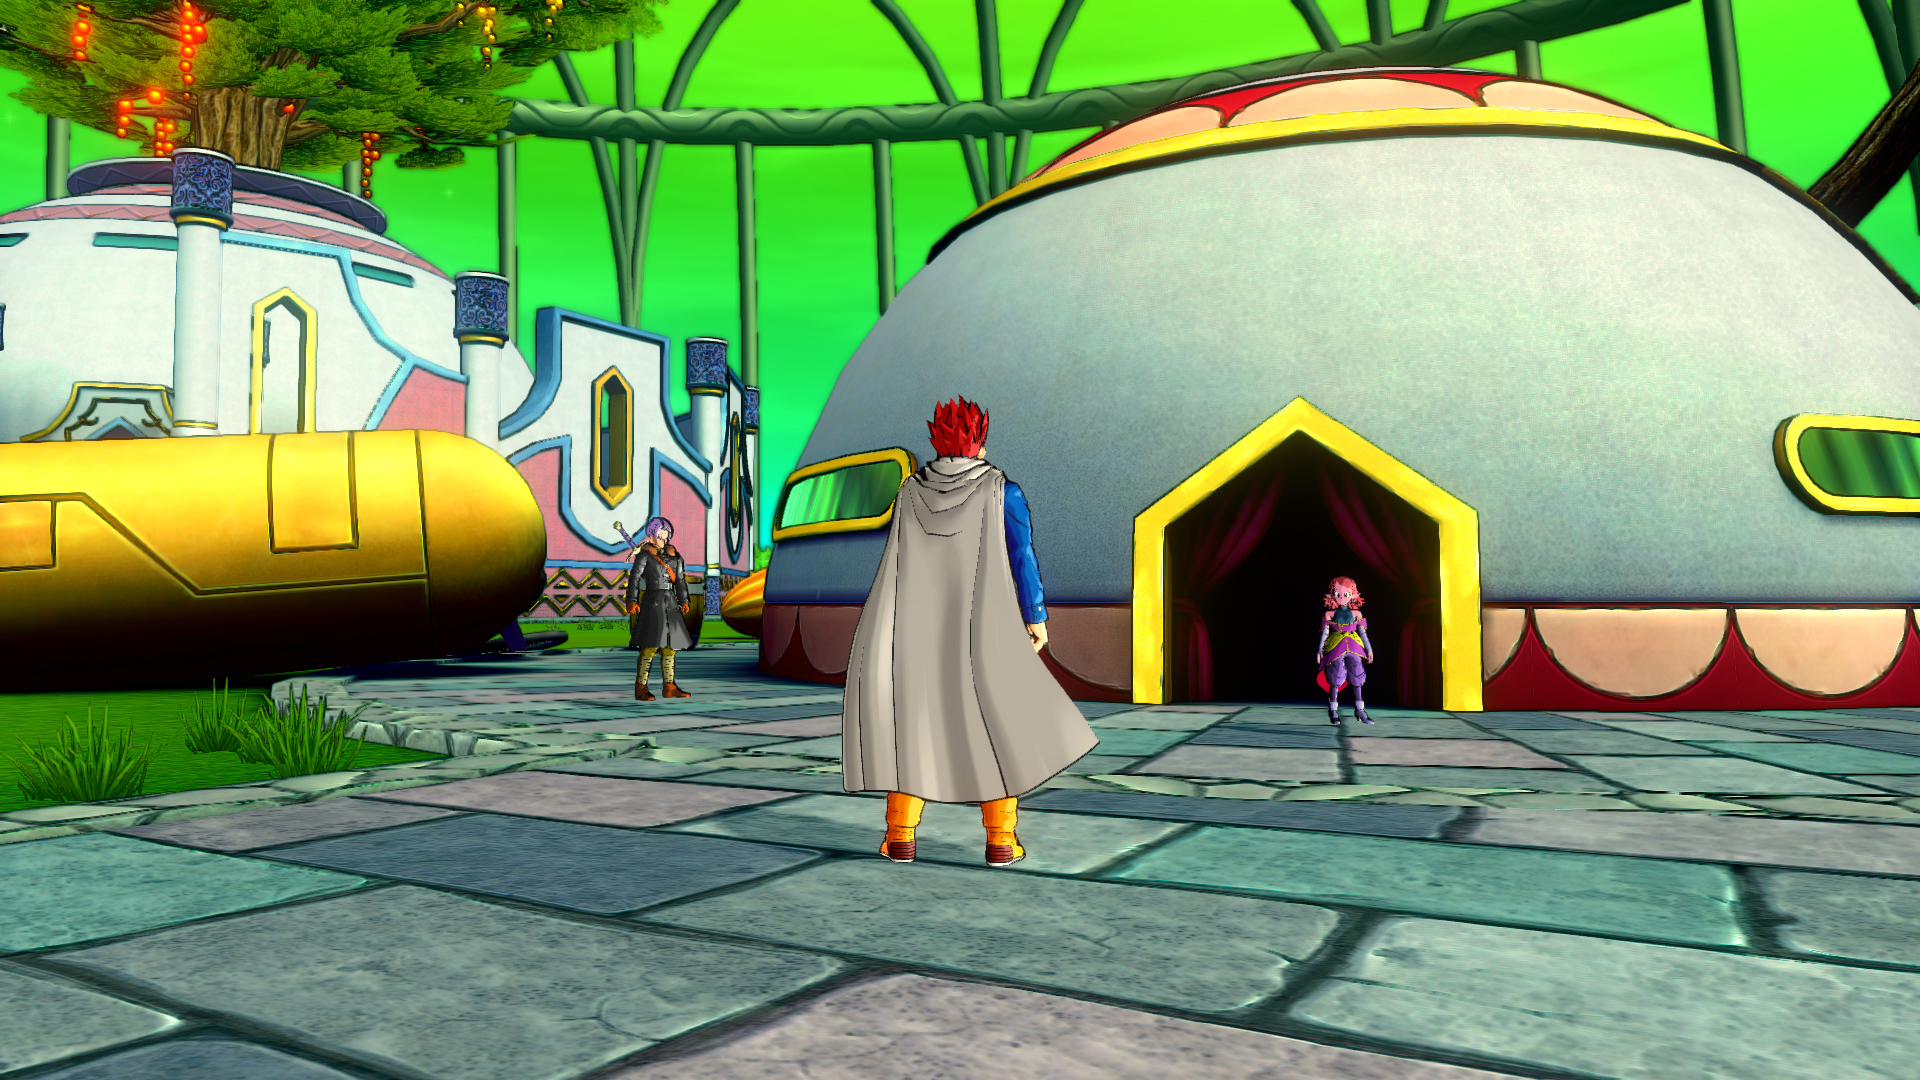 Dragon Ball Xenoverse Jan 2015 Screenshots 40